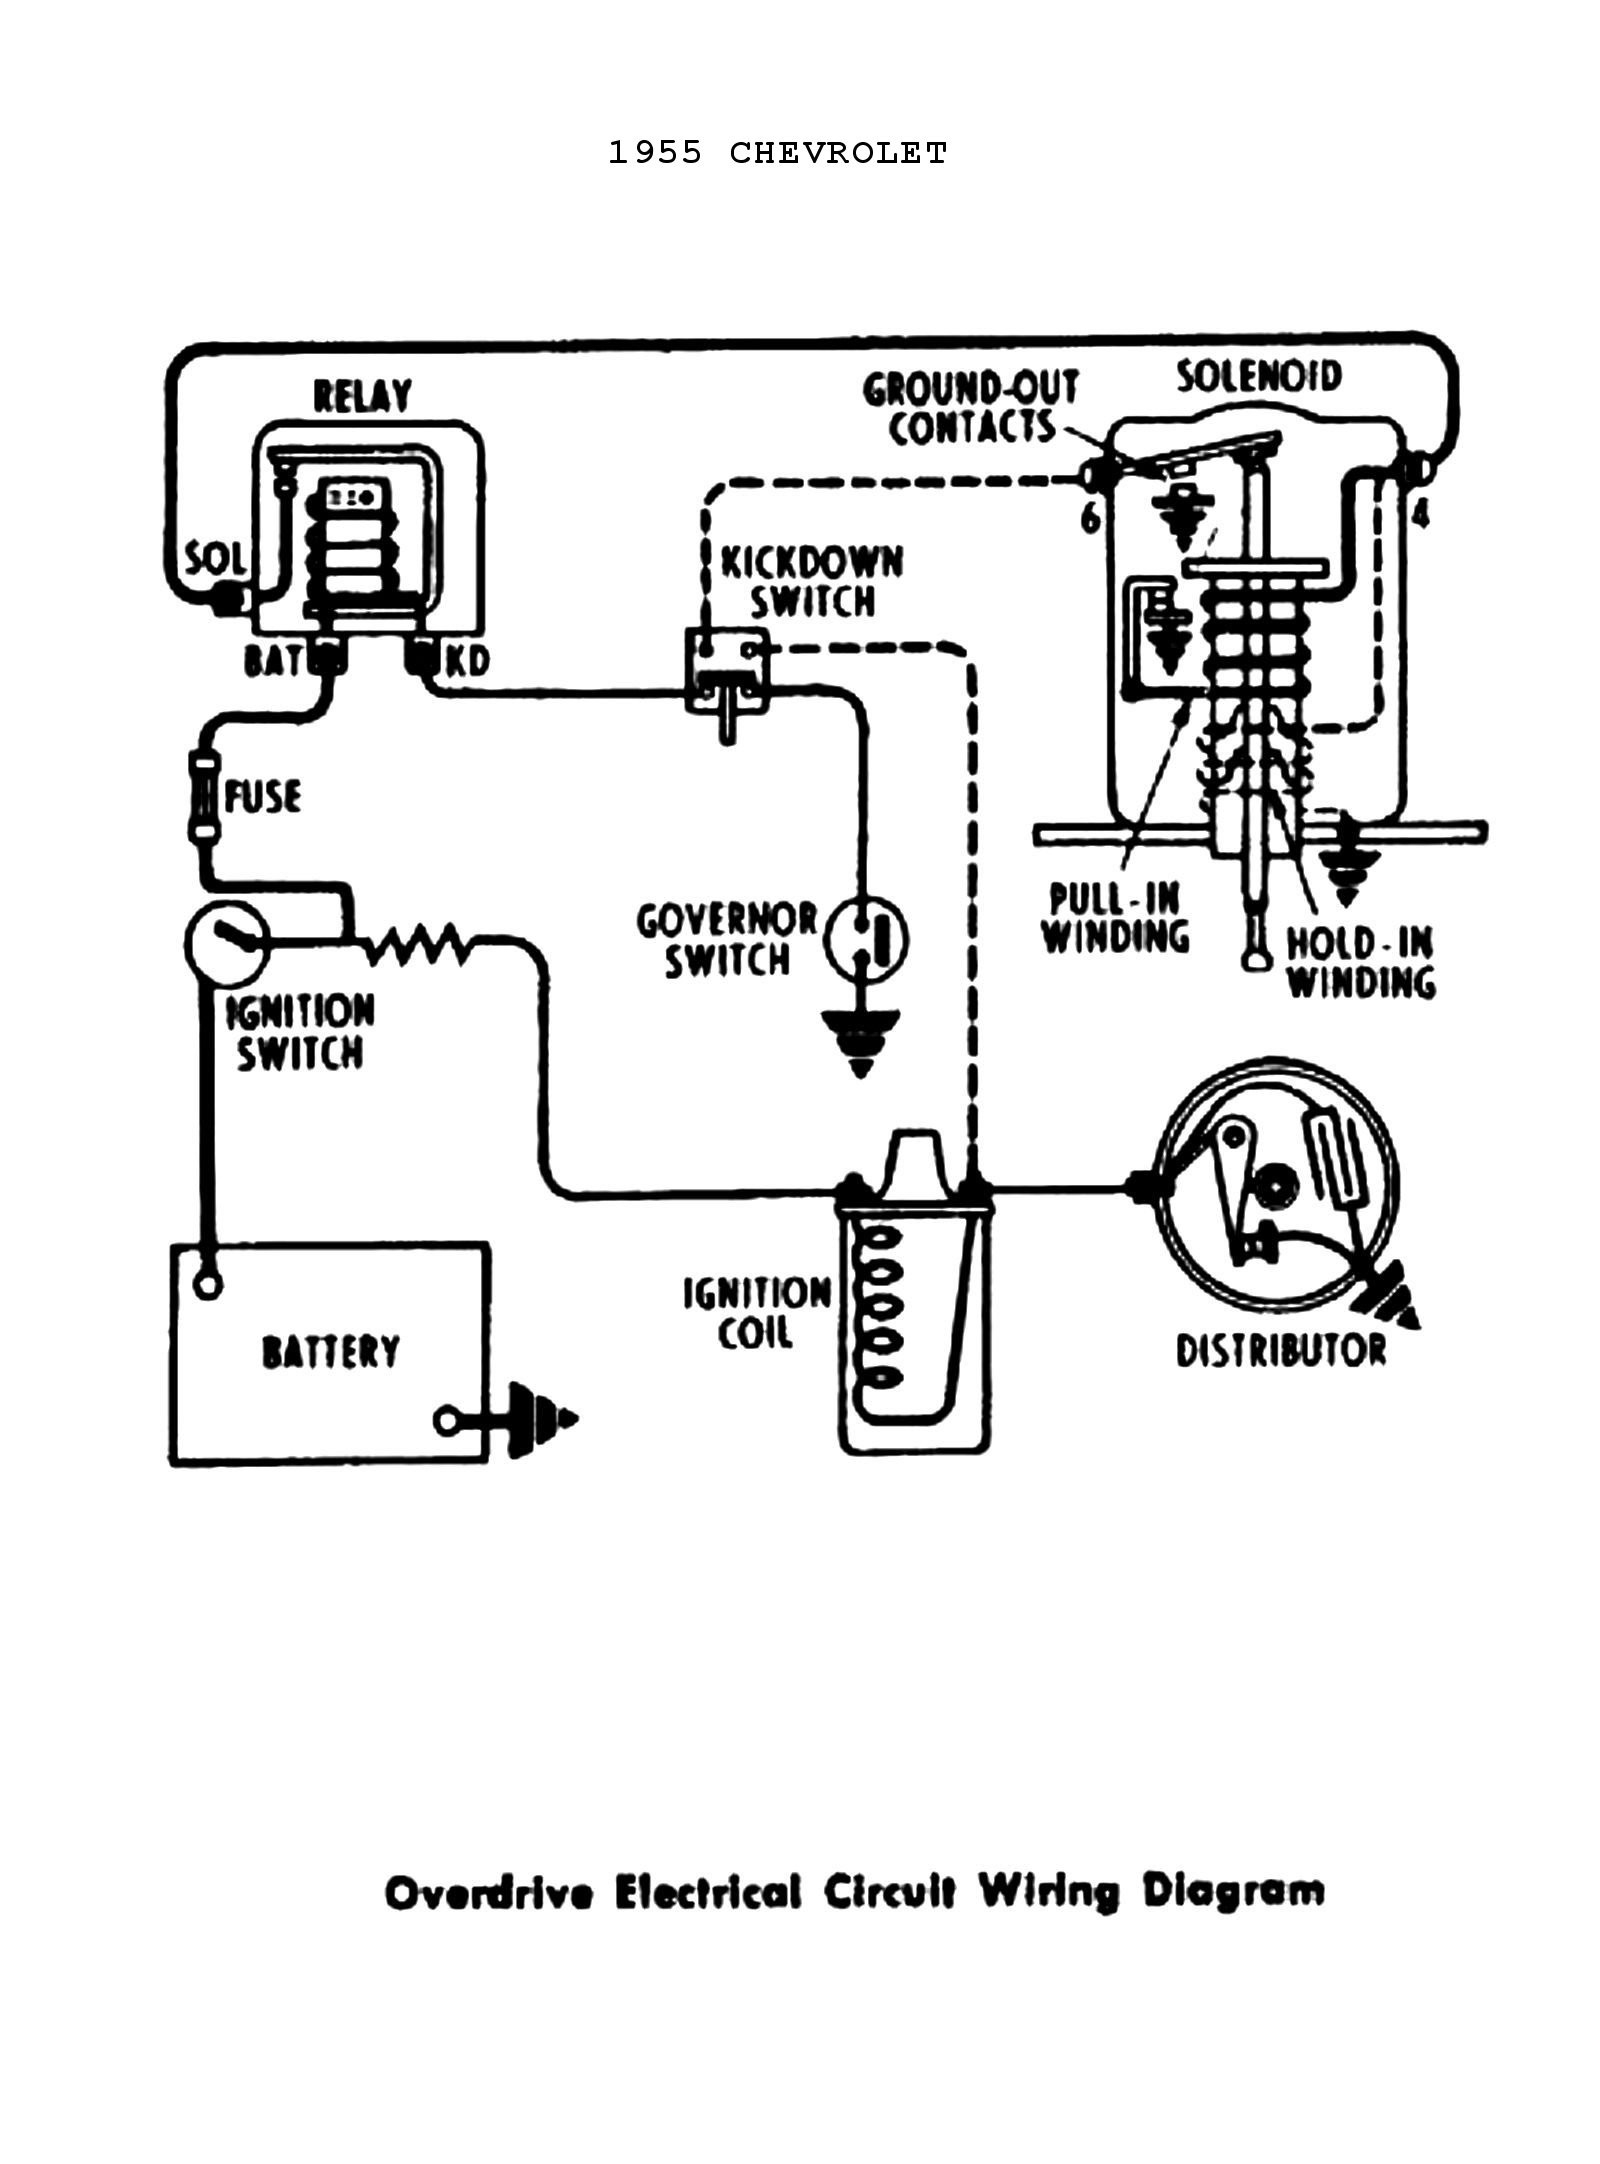 1955 Chevy Turn Signal Wiring Diagram Sample | Wiring ... on